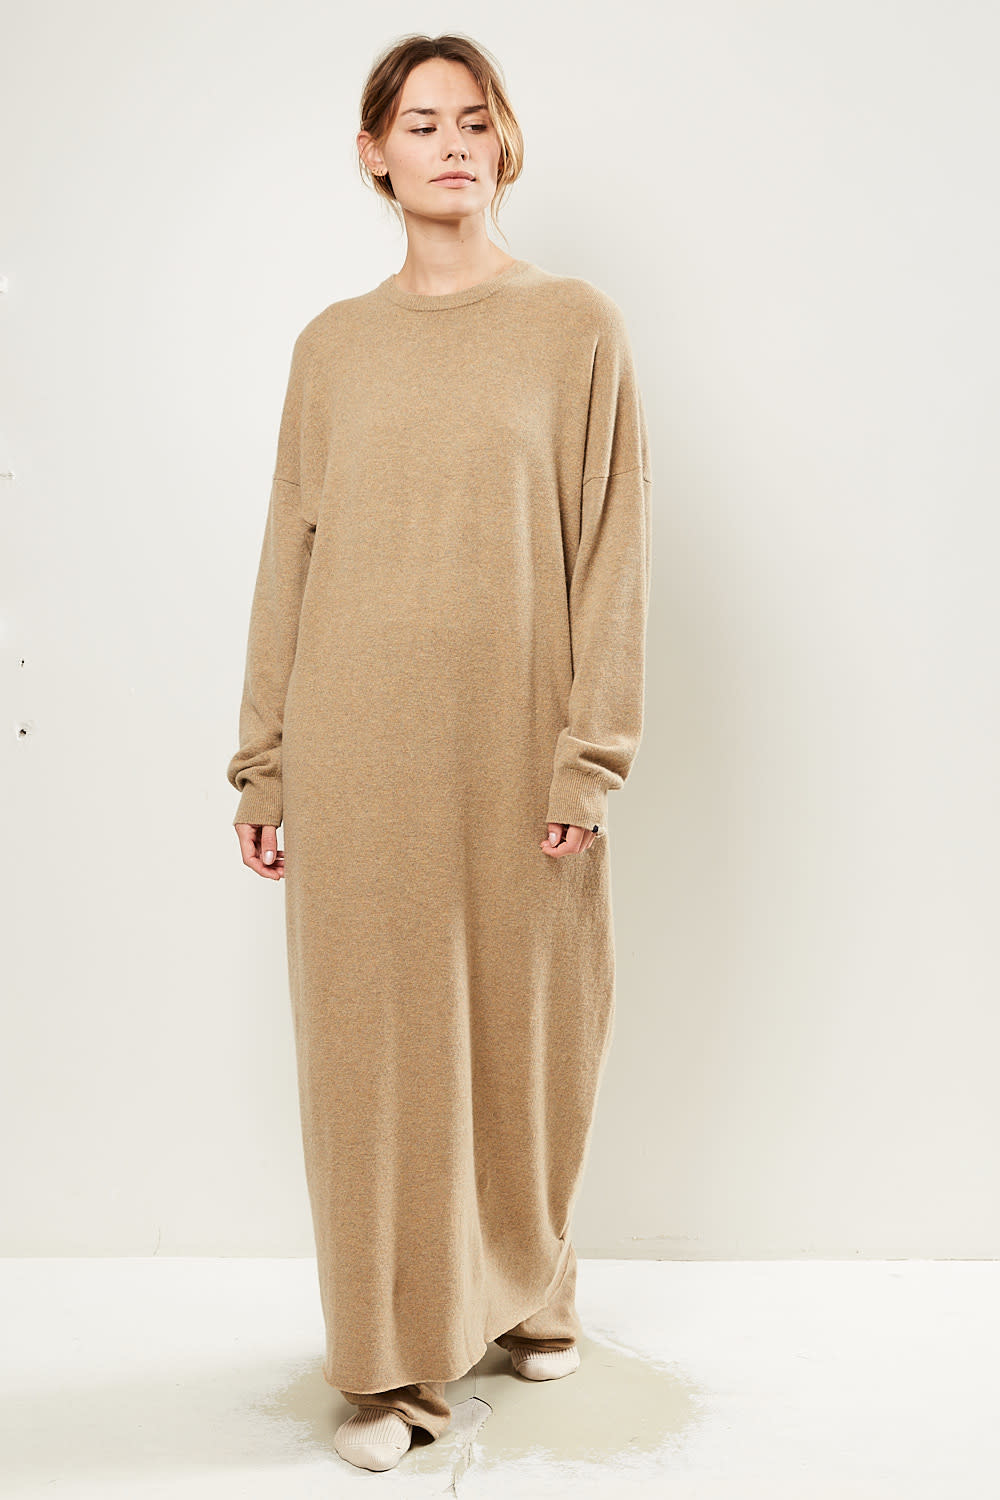 extreme cashmere No106 weird crew neck dress harris